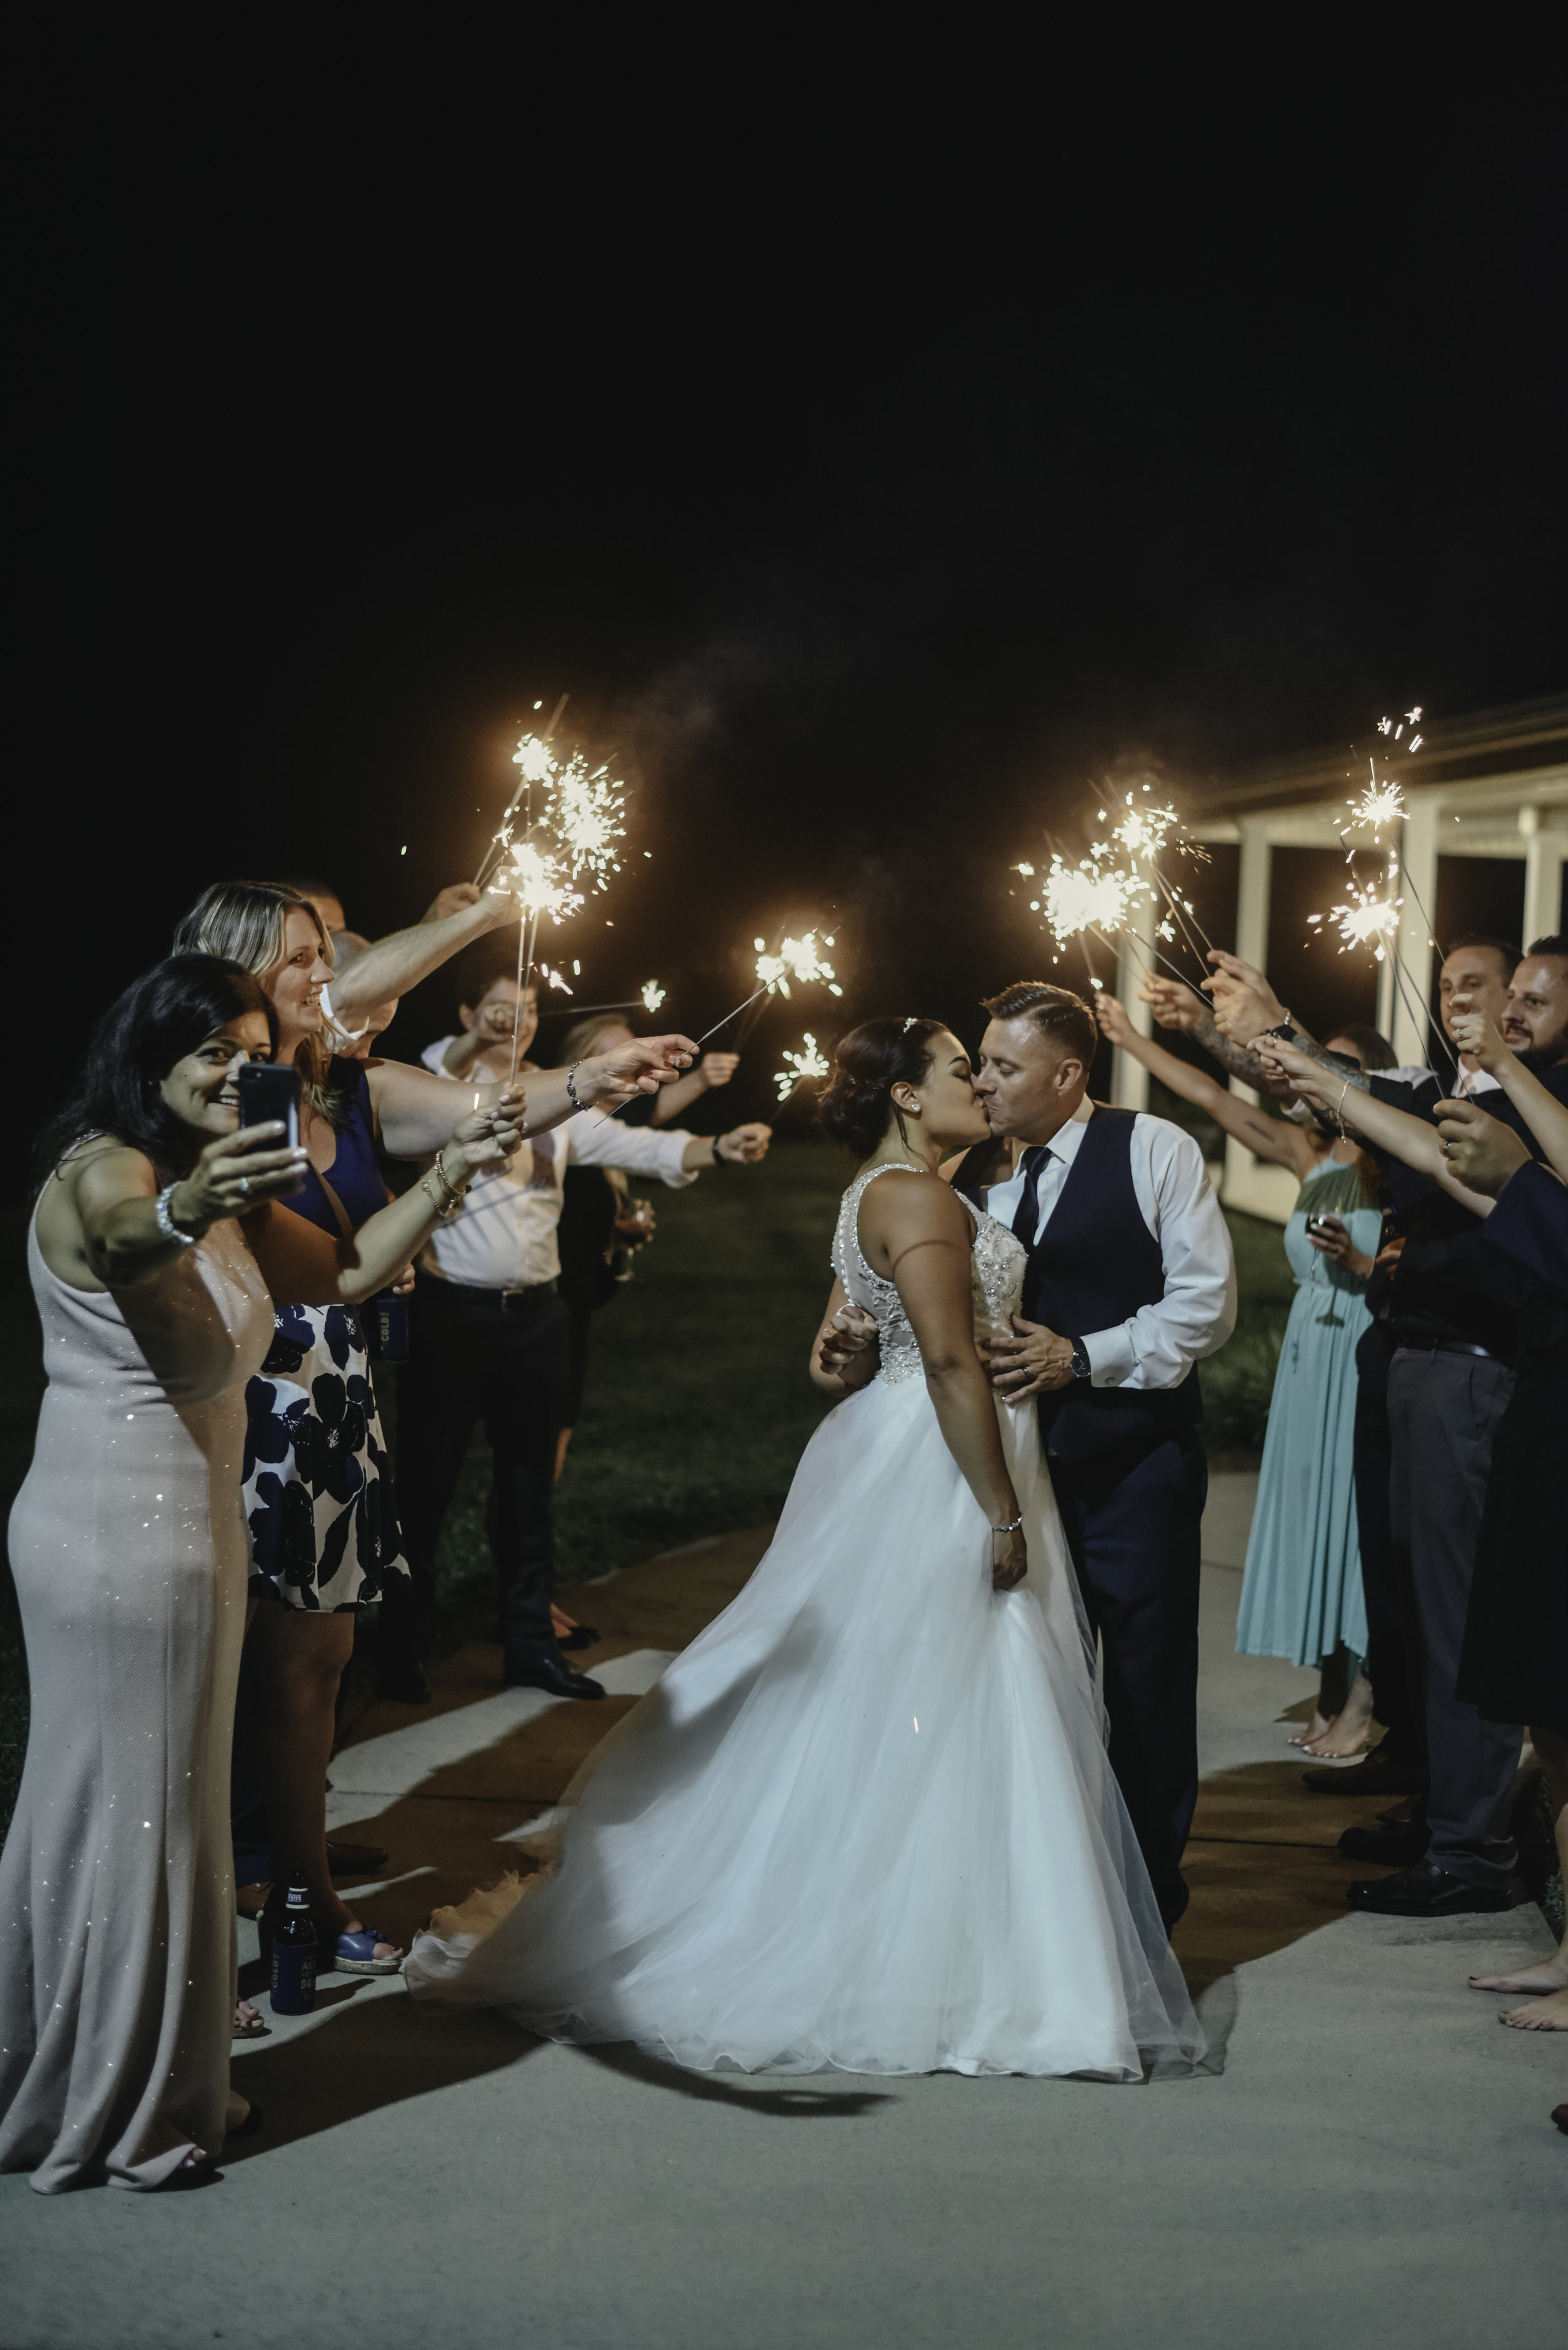 North Wedding - Click here to view